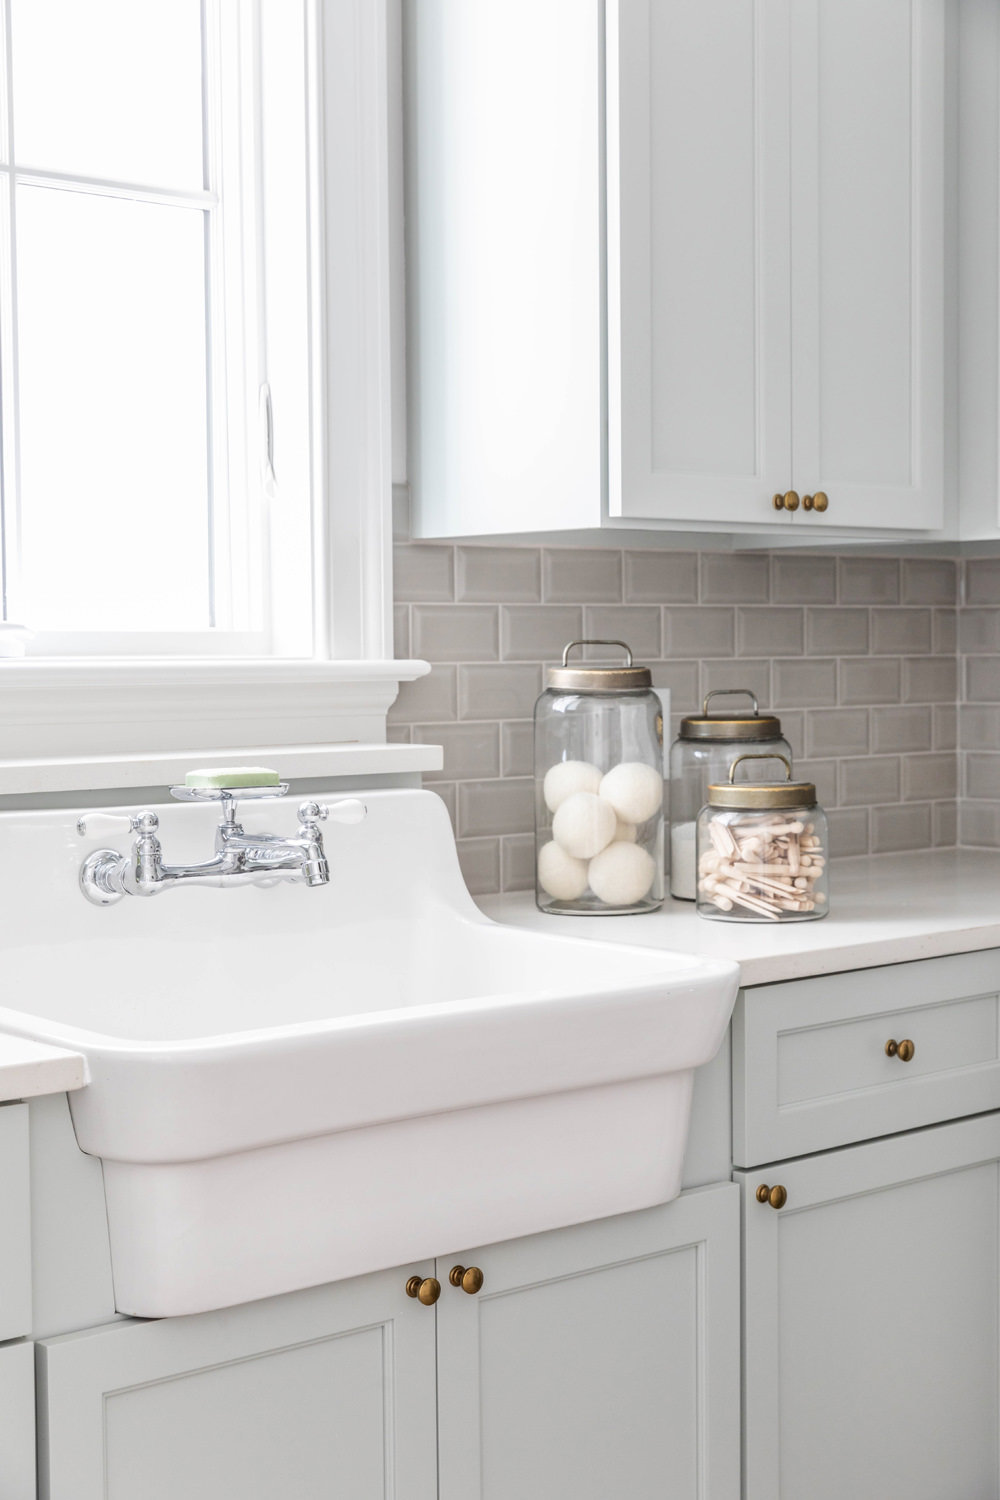 Sherwin-Williams-Silver-Strand-Laundry-Room-with-Kohler-Utility-Sink-and-Brick-Herringbone-Floor-4